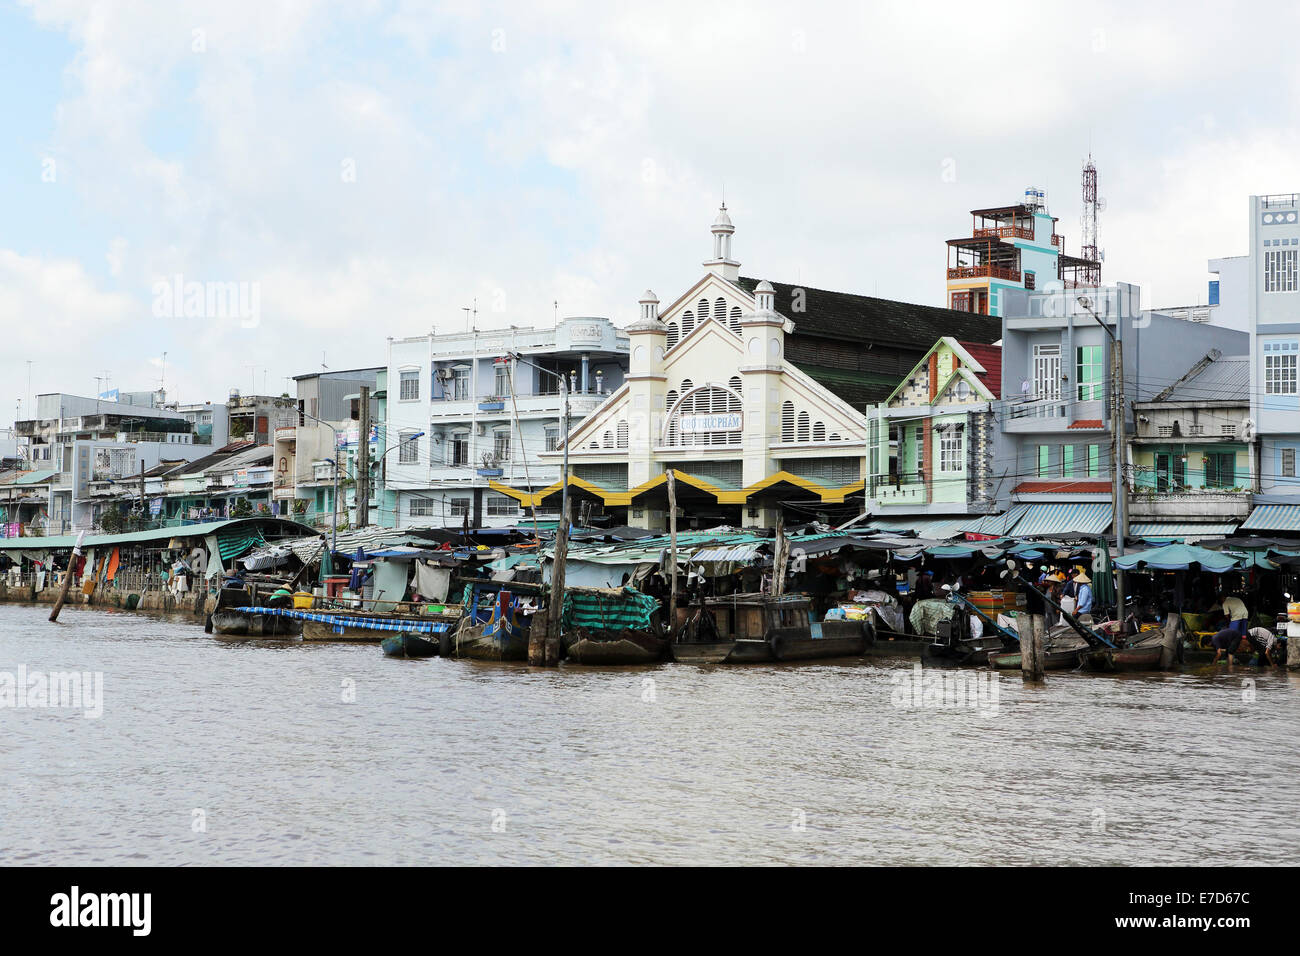 The local market the Mekong River in Sa Dec, Vietnam. - Stock Image